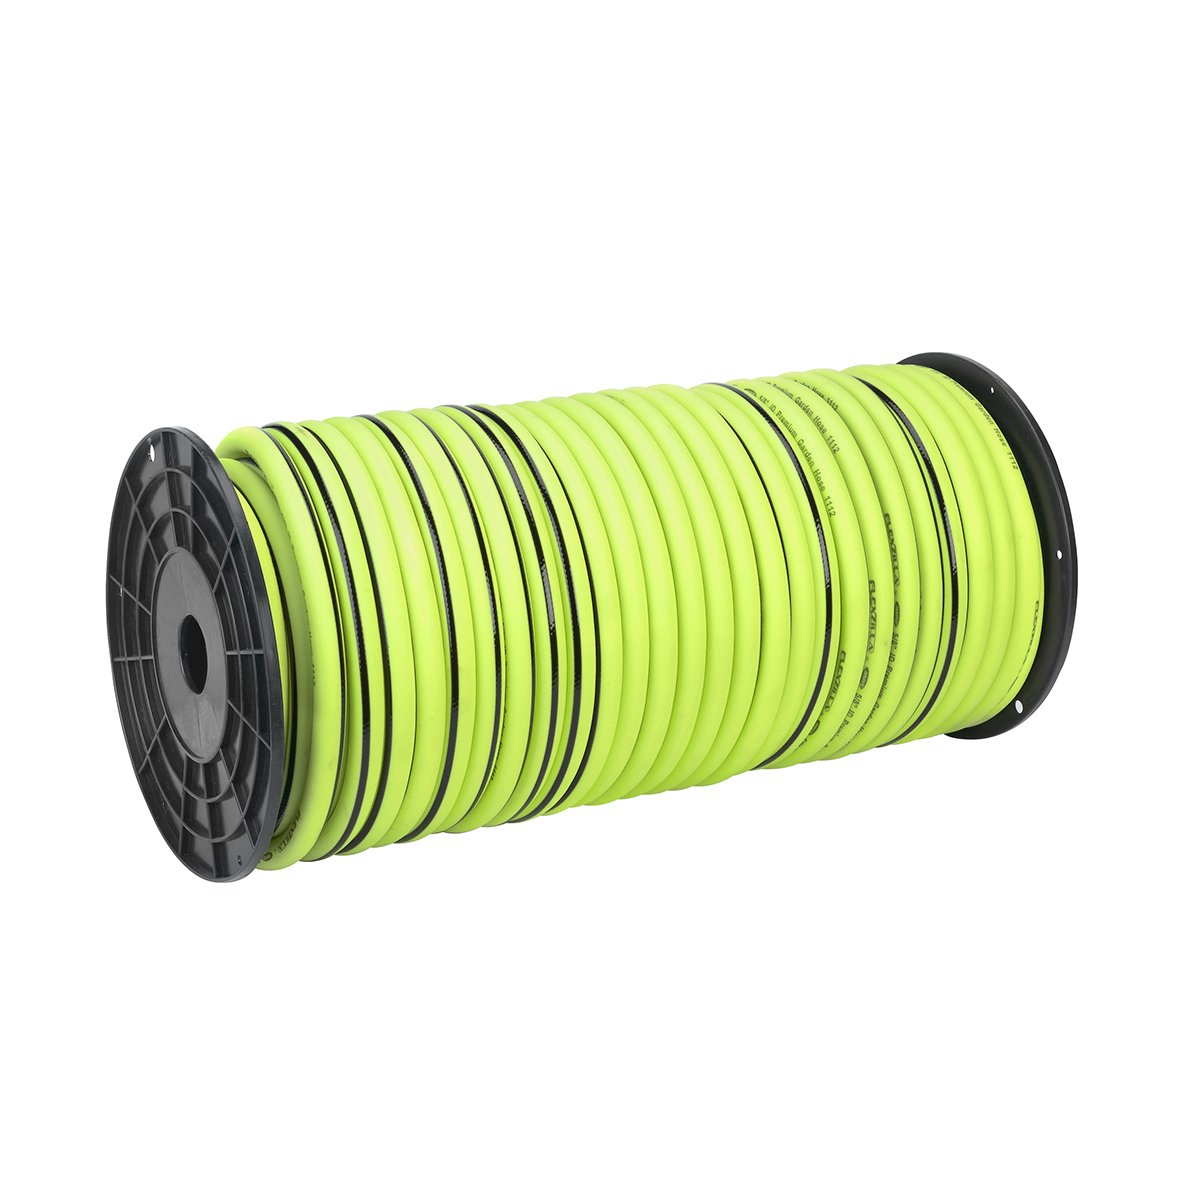 Amazon.com : Flexzilla Pro Water Hose, Bulk Plastic Spool, 5/8 In. X 250  Ft., Heavy Duty, Lightweight, ZillaGreen   HFZ58250YW : Garden U0026 Outdoor